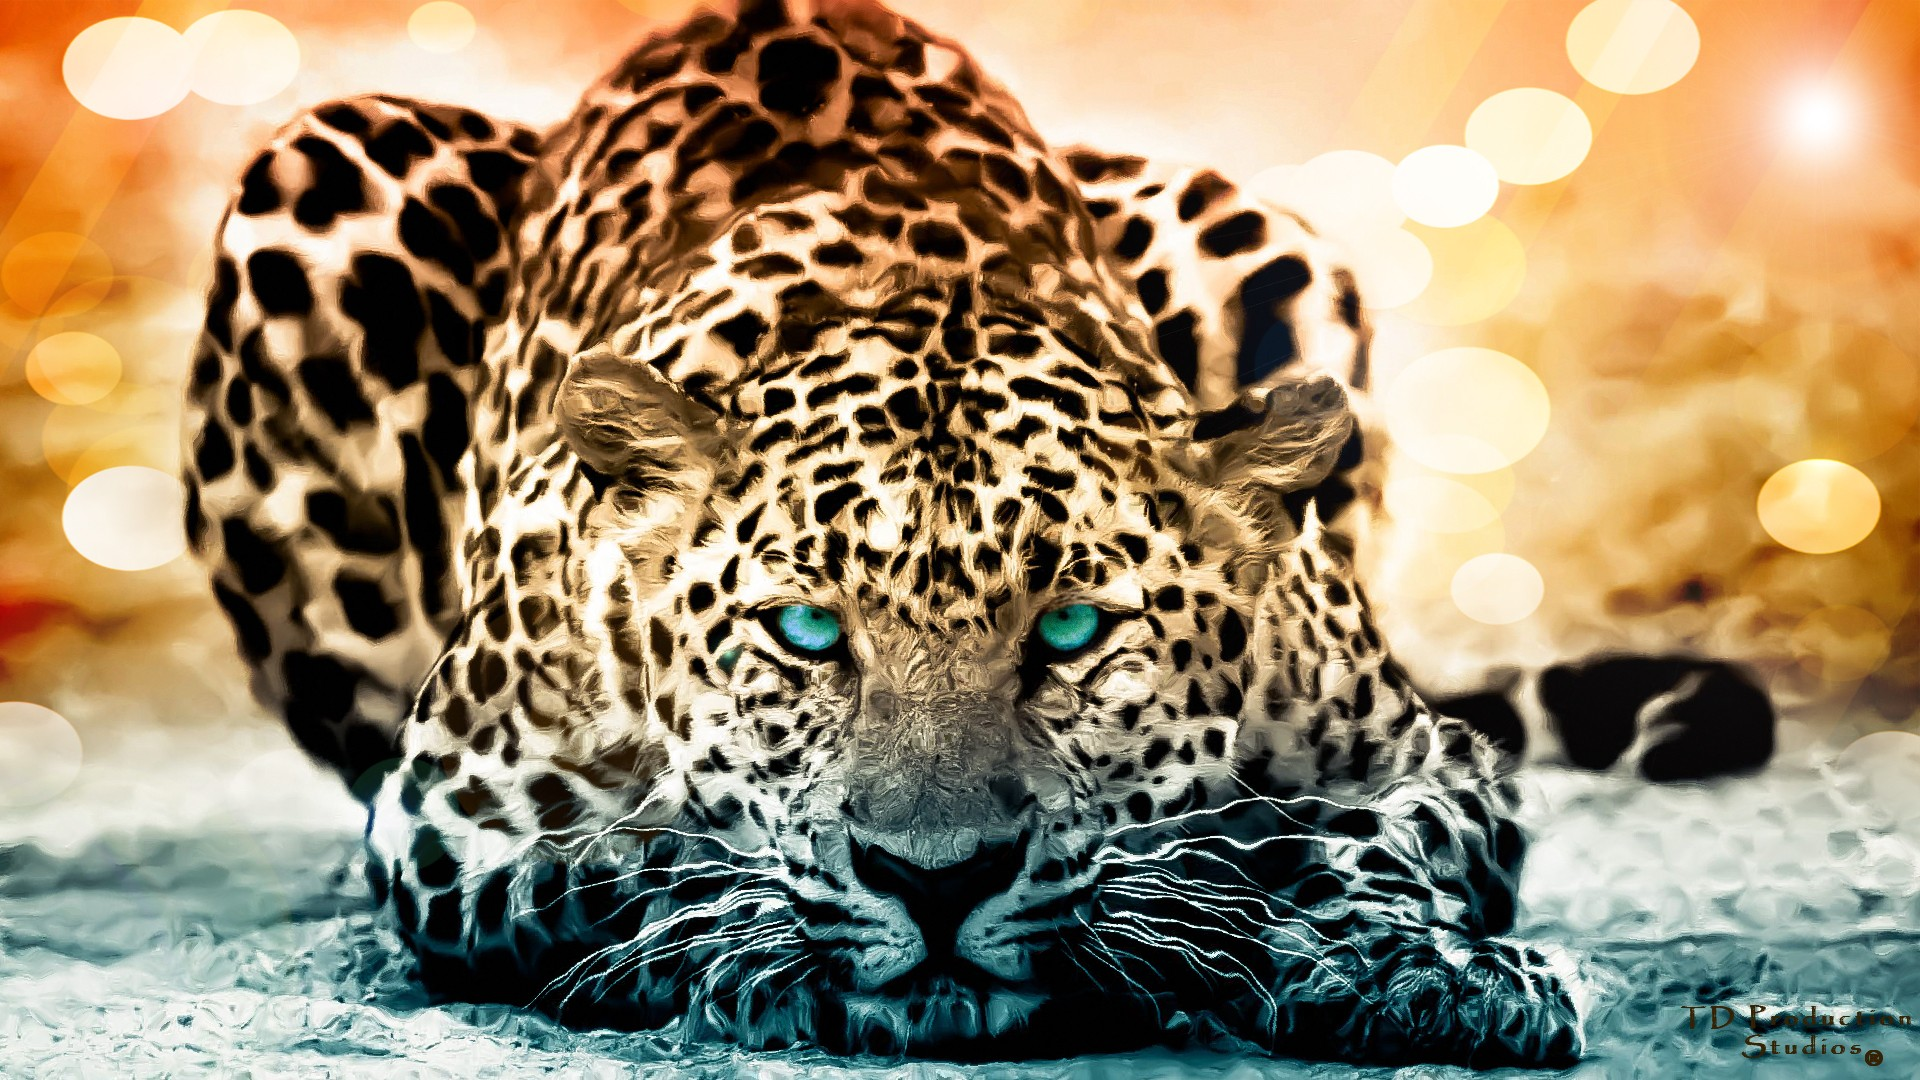 159 Jaguar HD Wallpapers Backgrounds 1920x1080